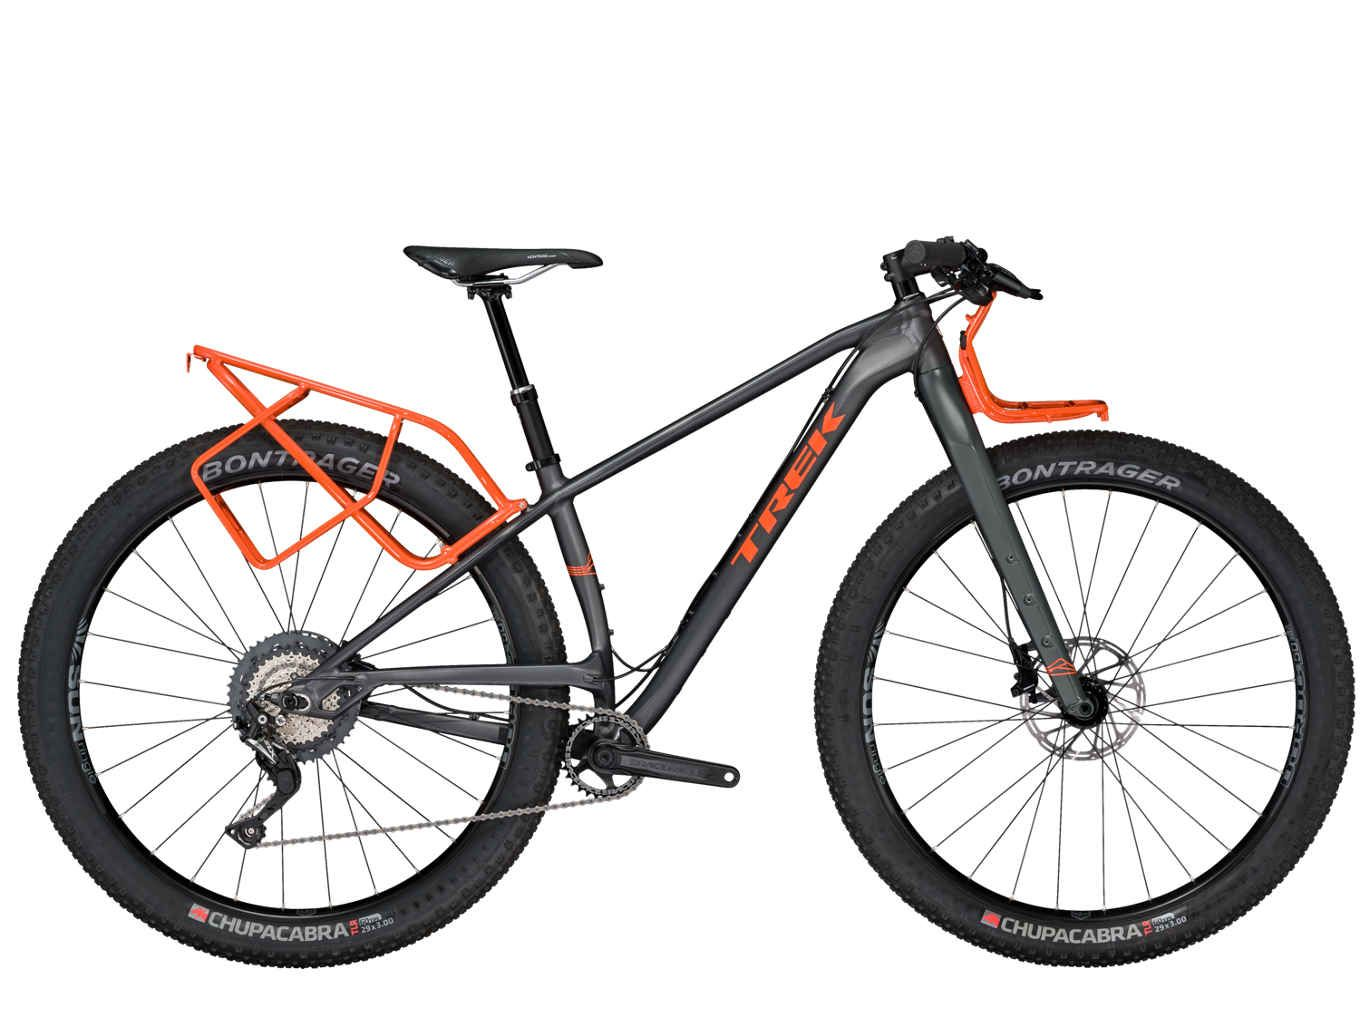 Trek S 1120 29 Touring Bike With Integrated Racks Trek Mountain